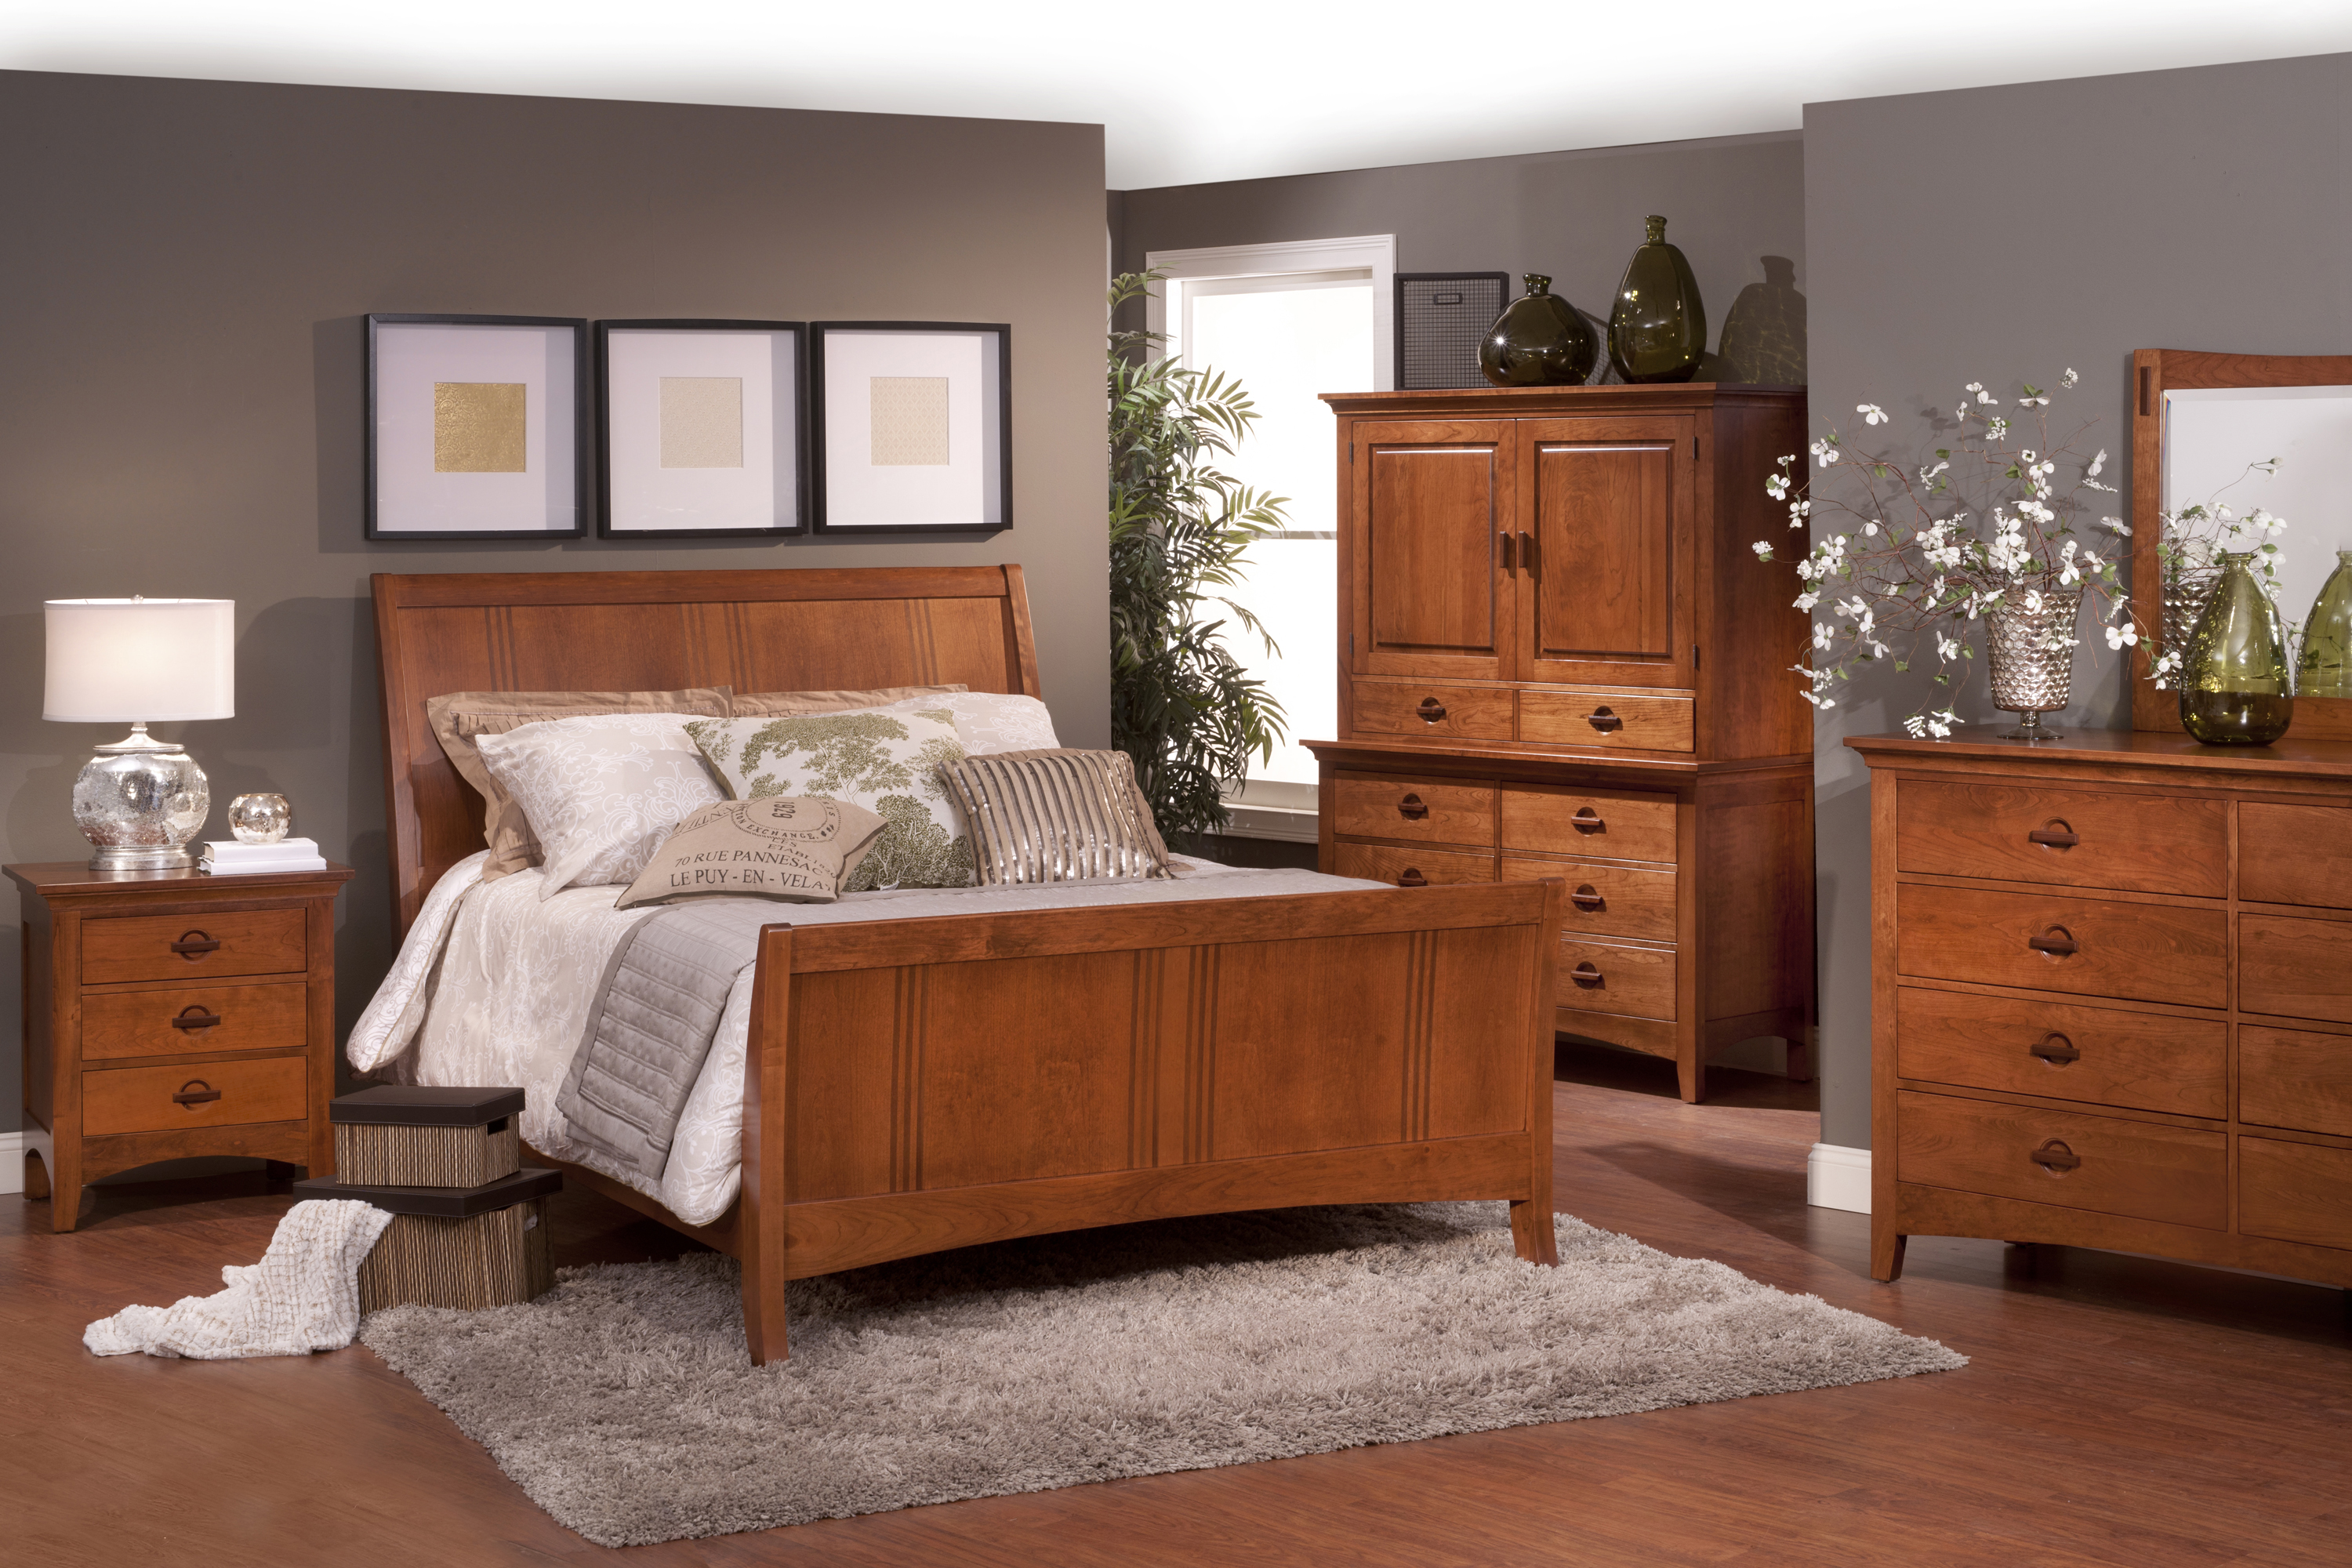 Old thomasville bedroom set for Thomasville white bedroom furniture